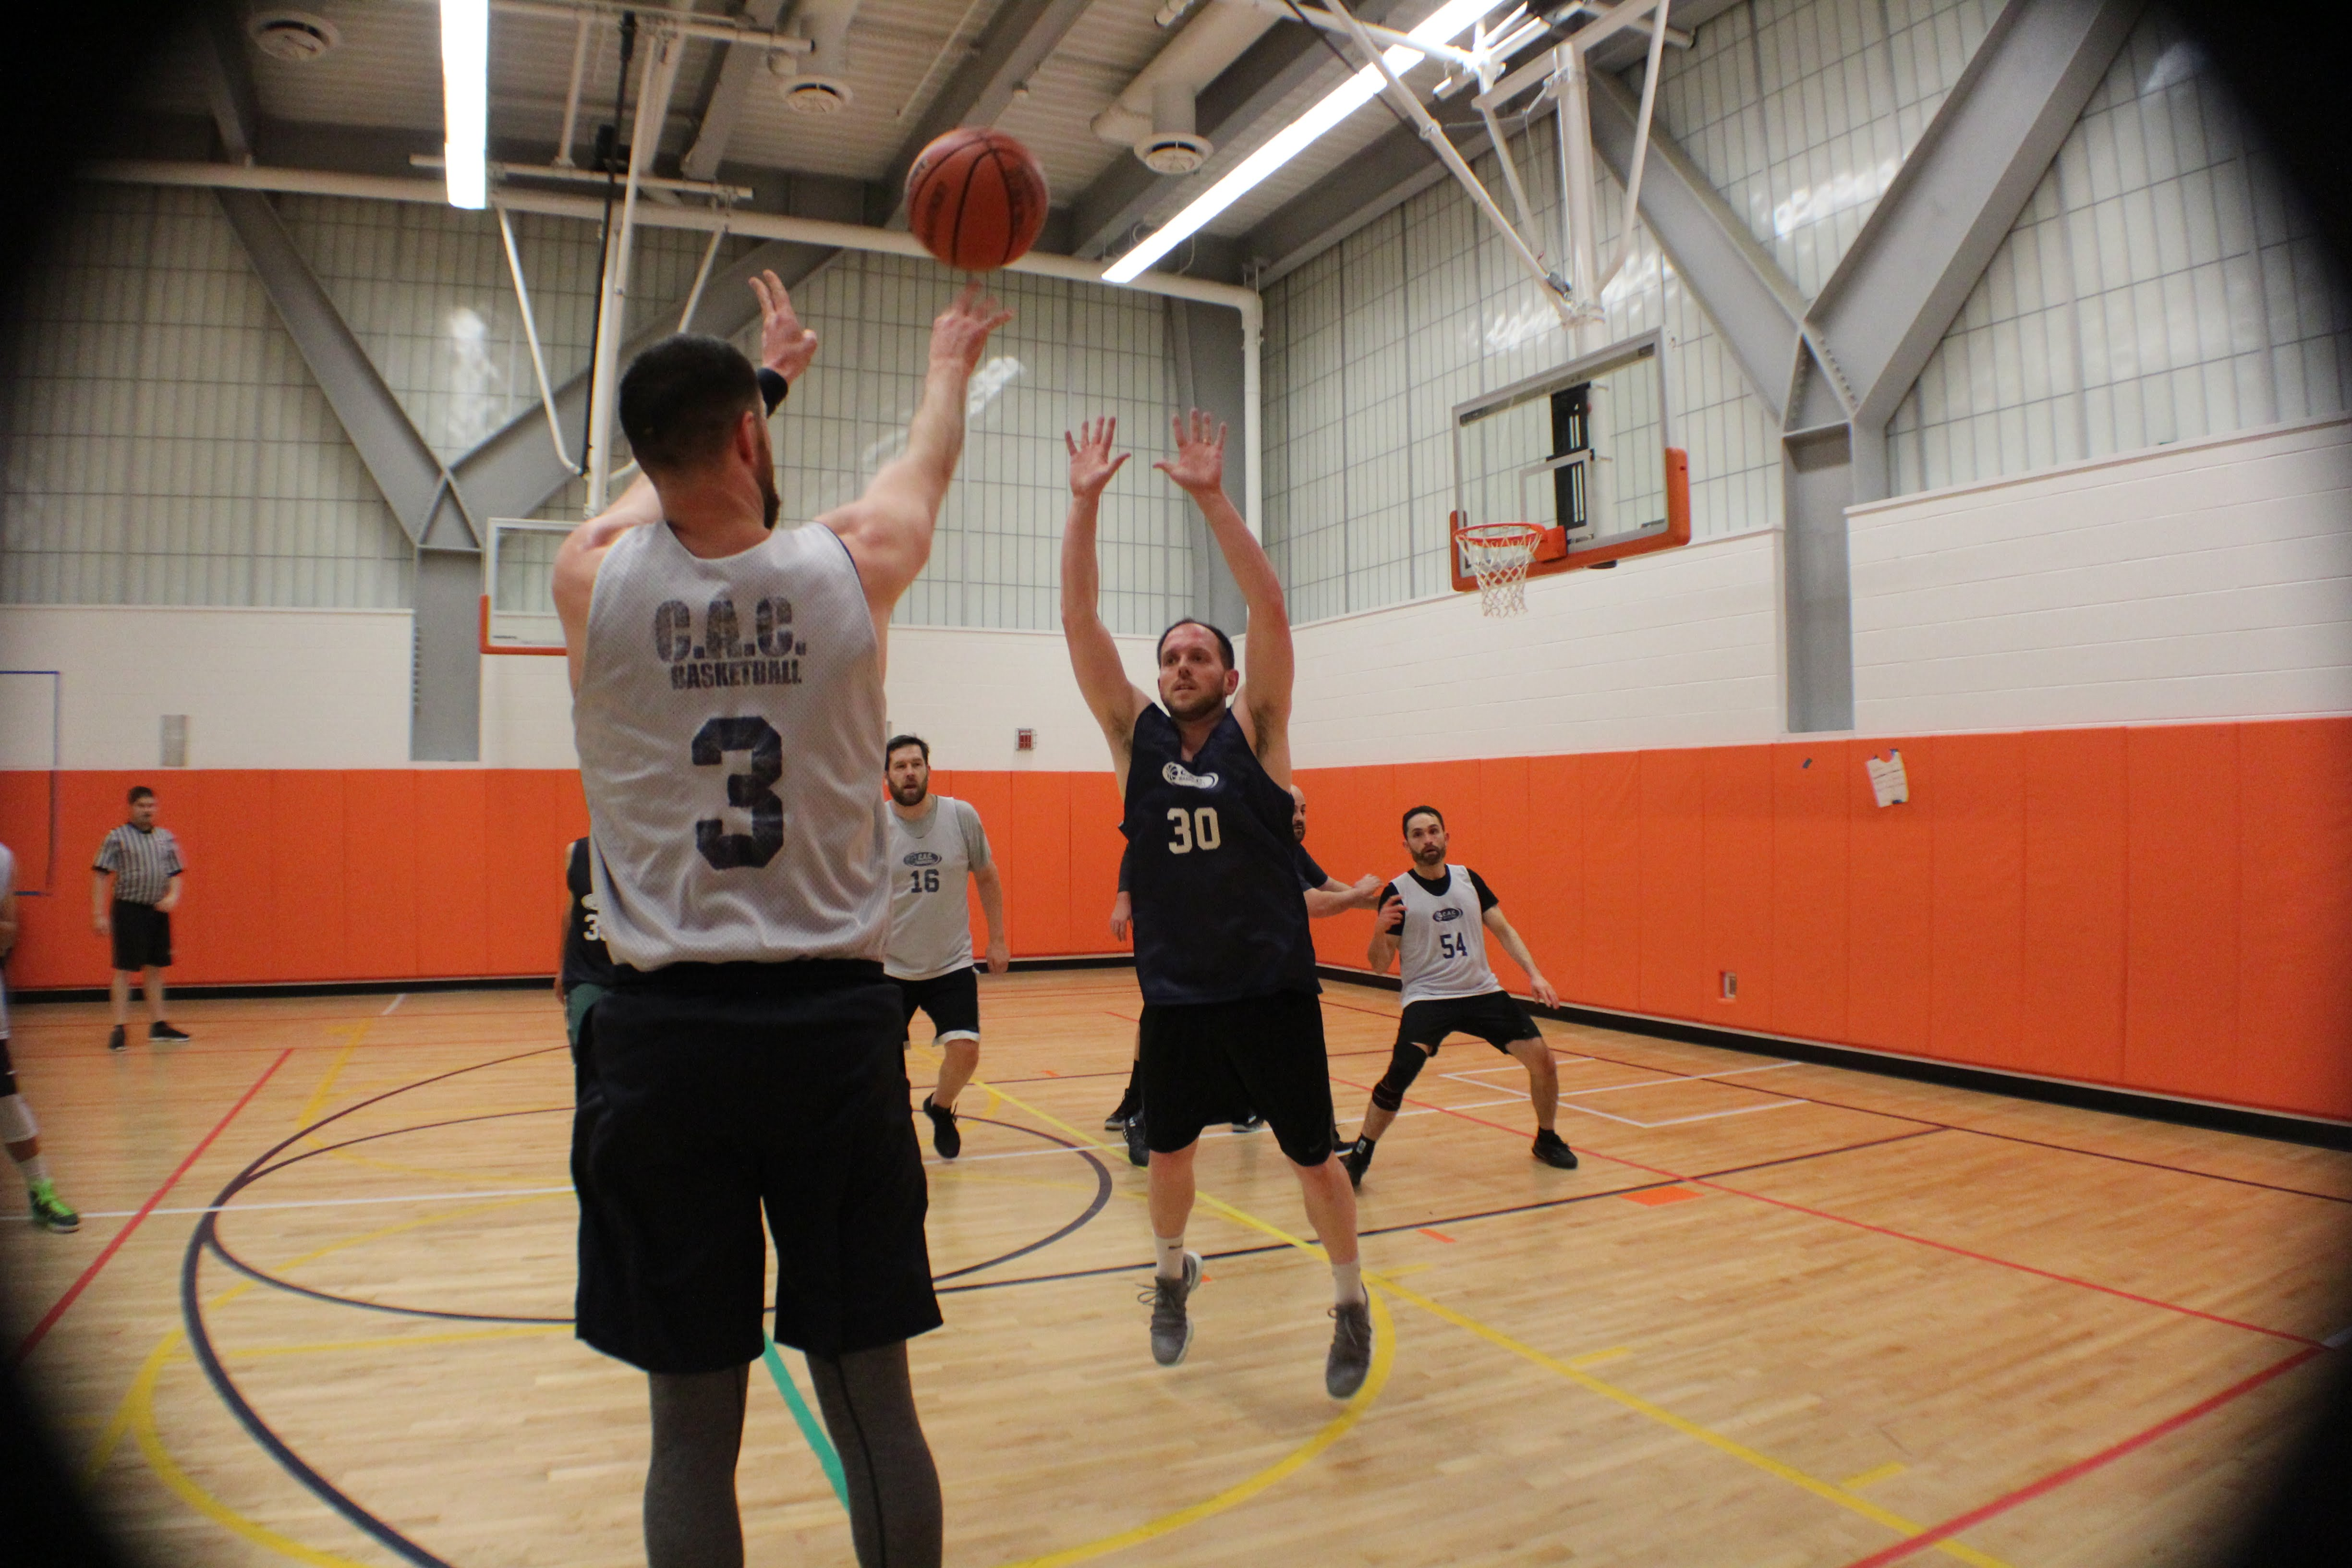 CAC Basketball League Spring 2018 Sign-ups Waltham MA